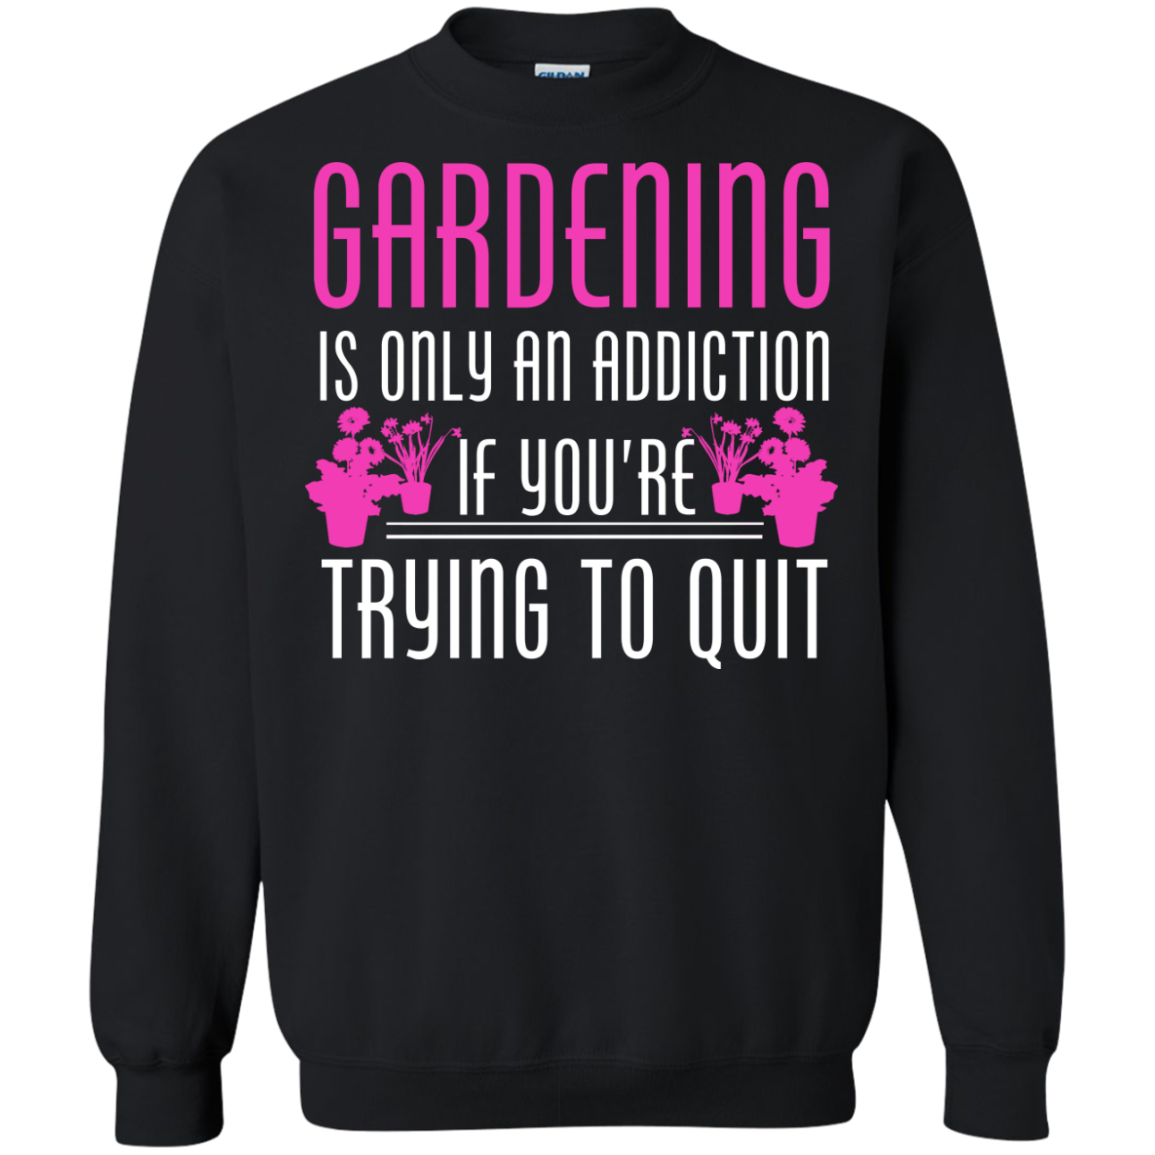 Gardening is only an addiction if you're trying to quit - The Sun Cat